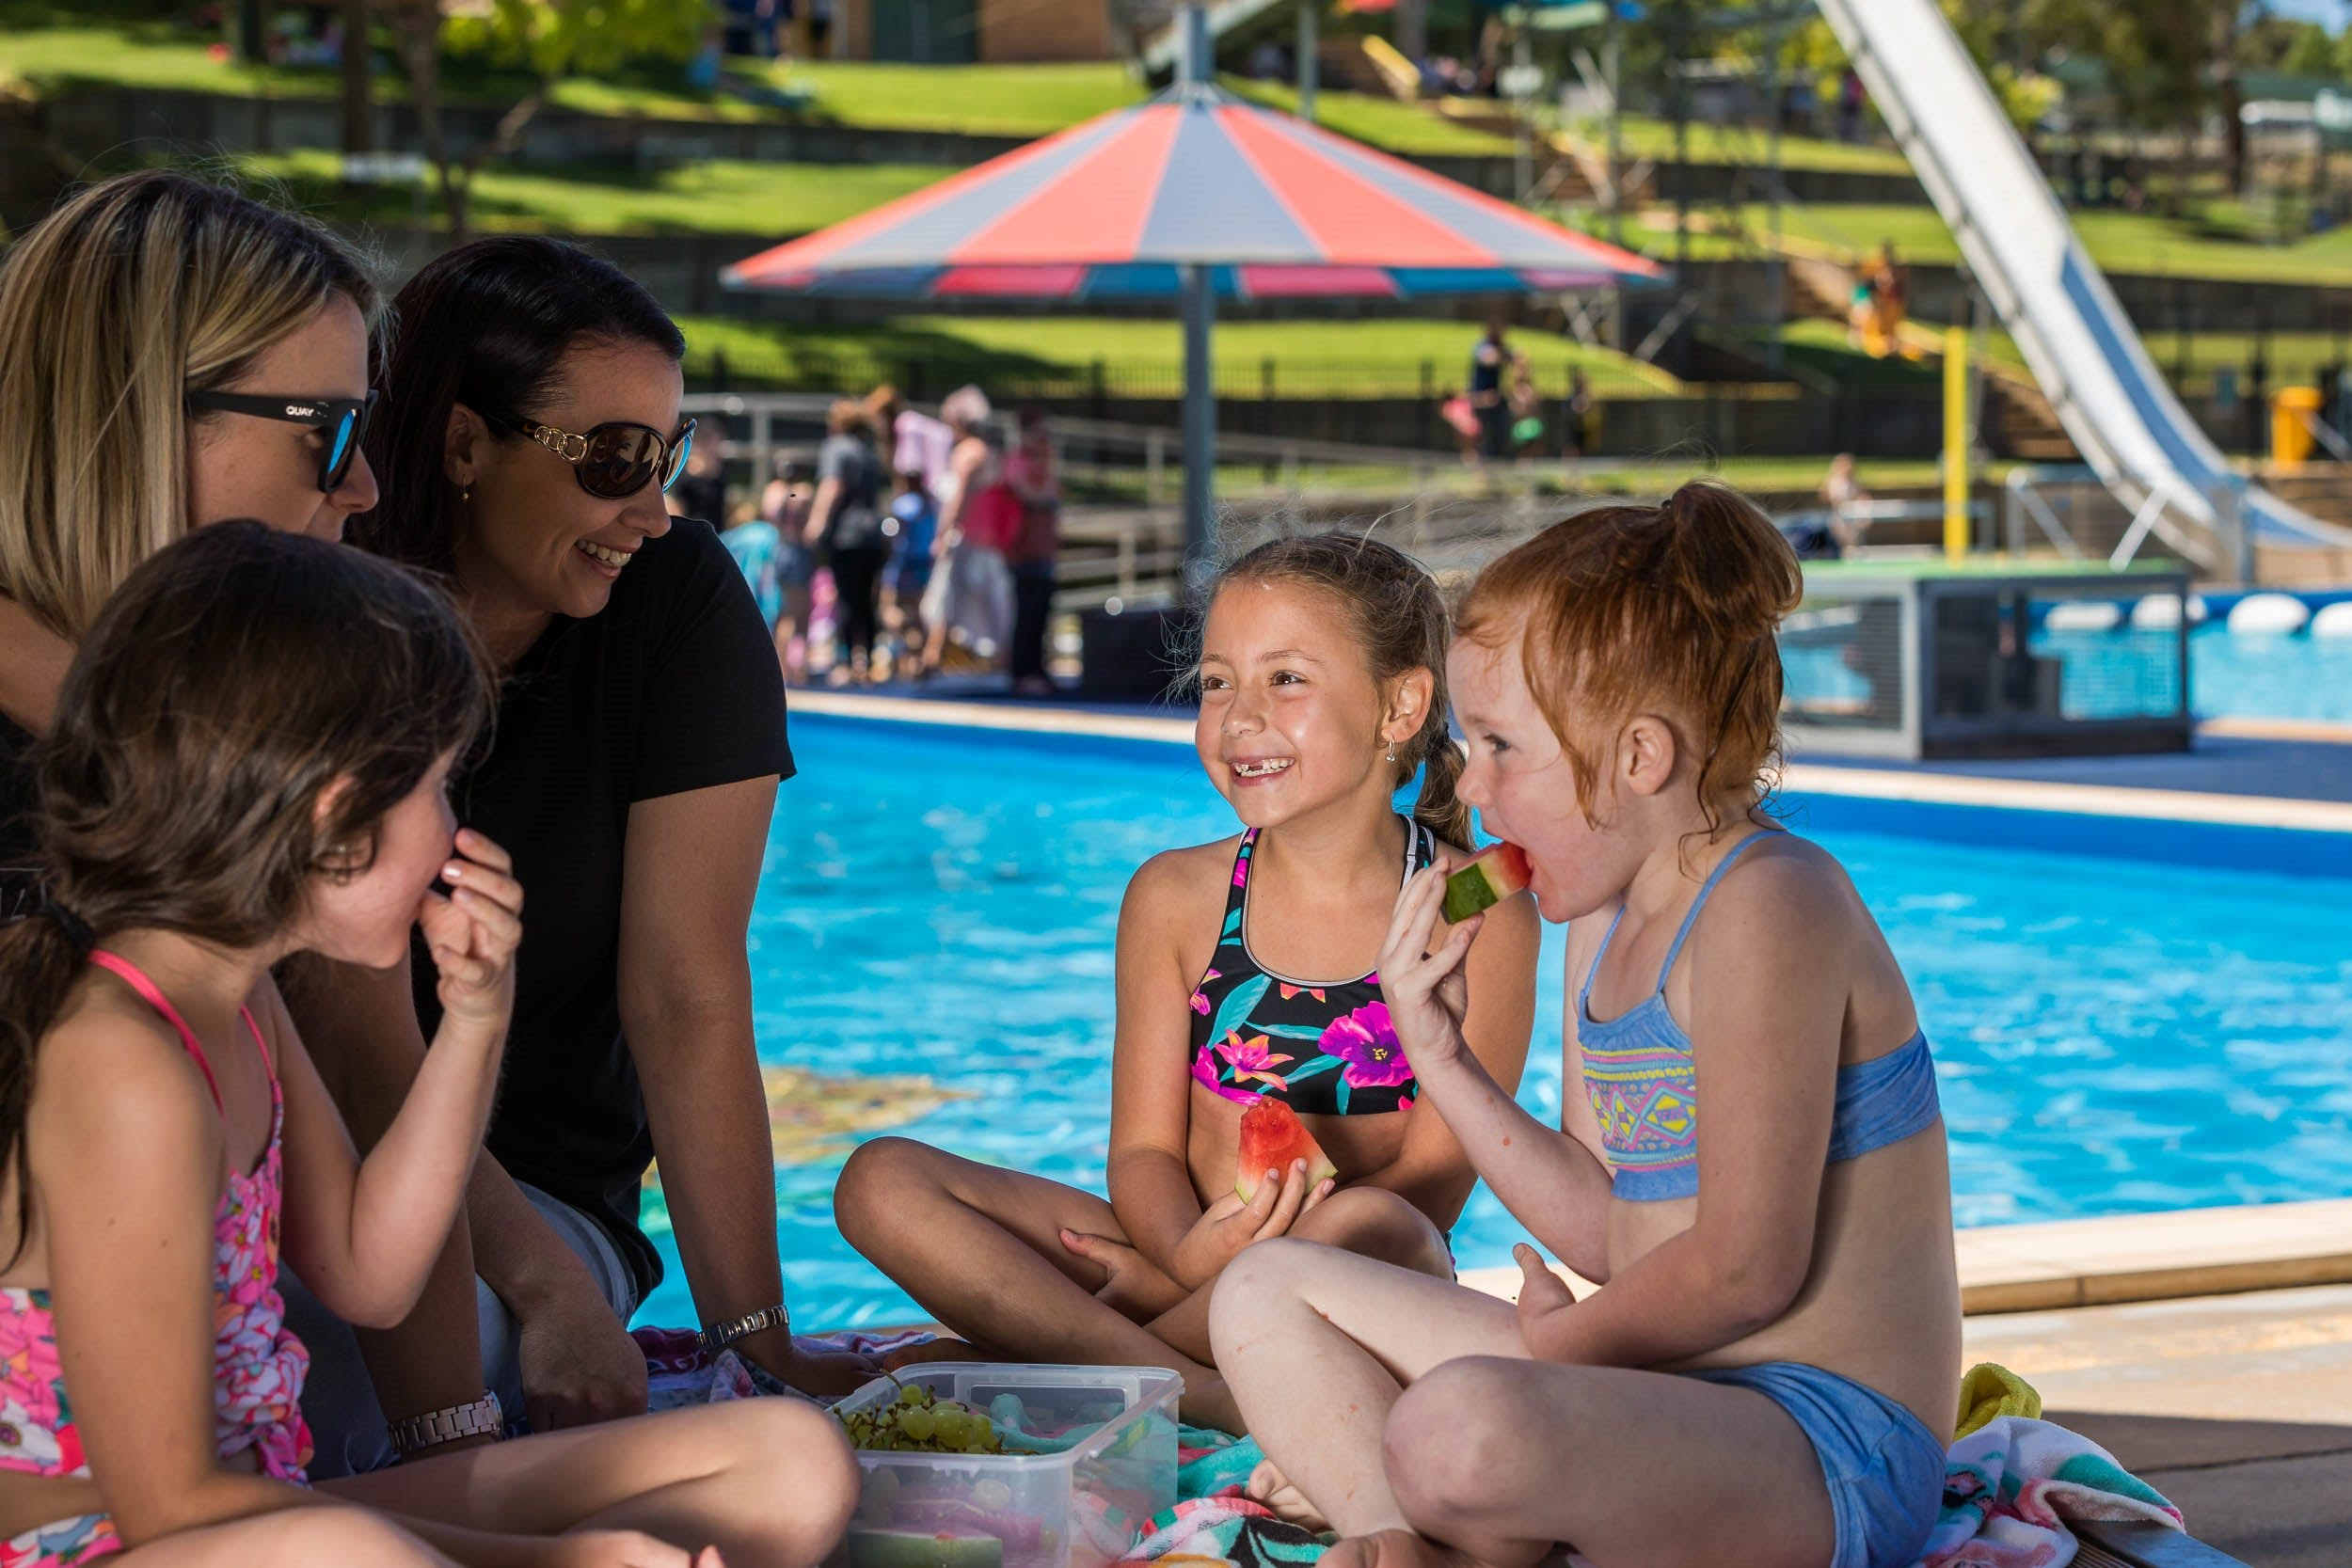 Australia Day fun at Lake Talbot Water Park - Accommodation Search